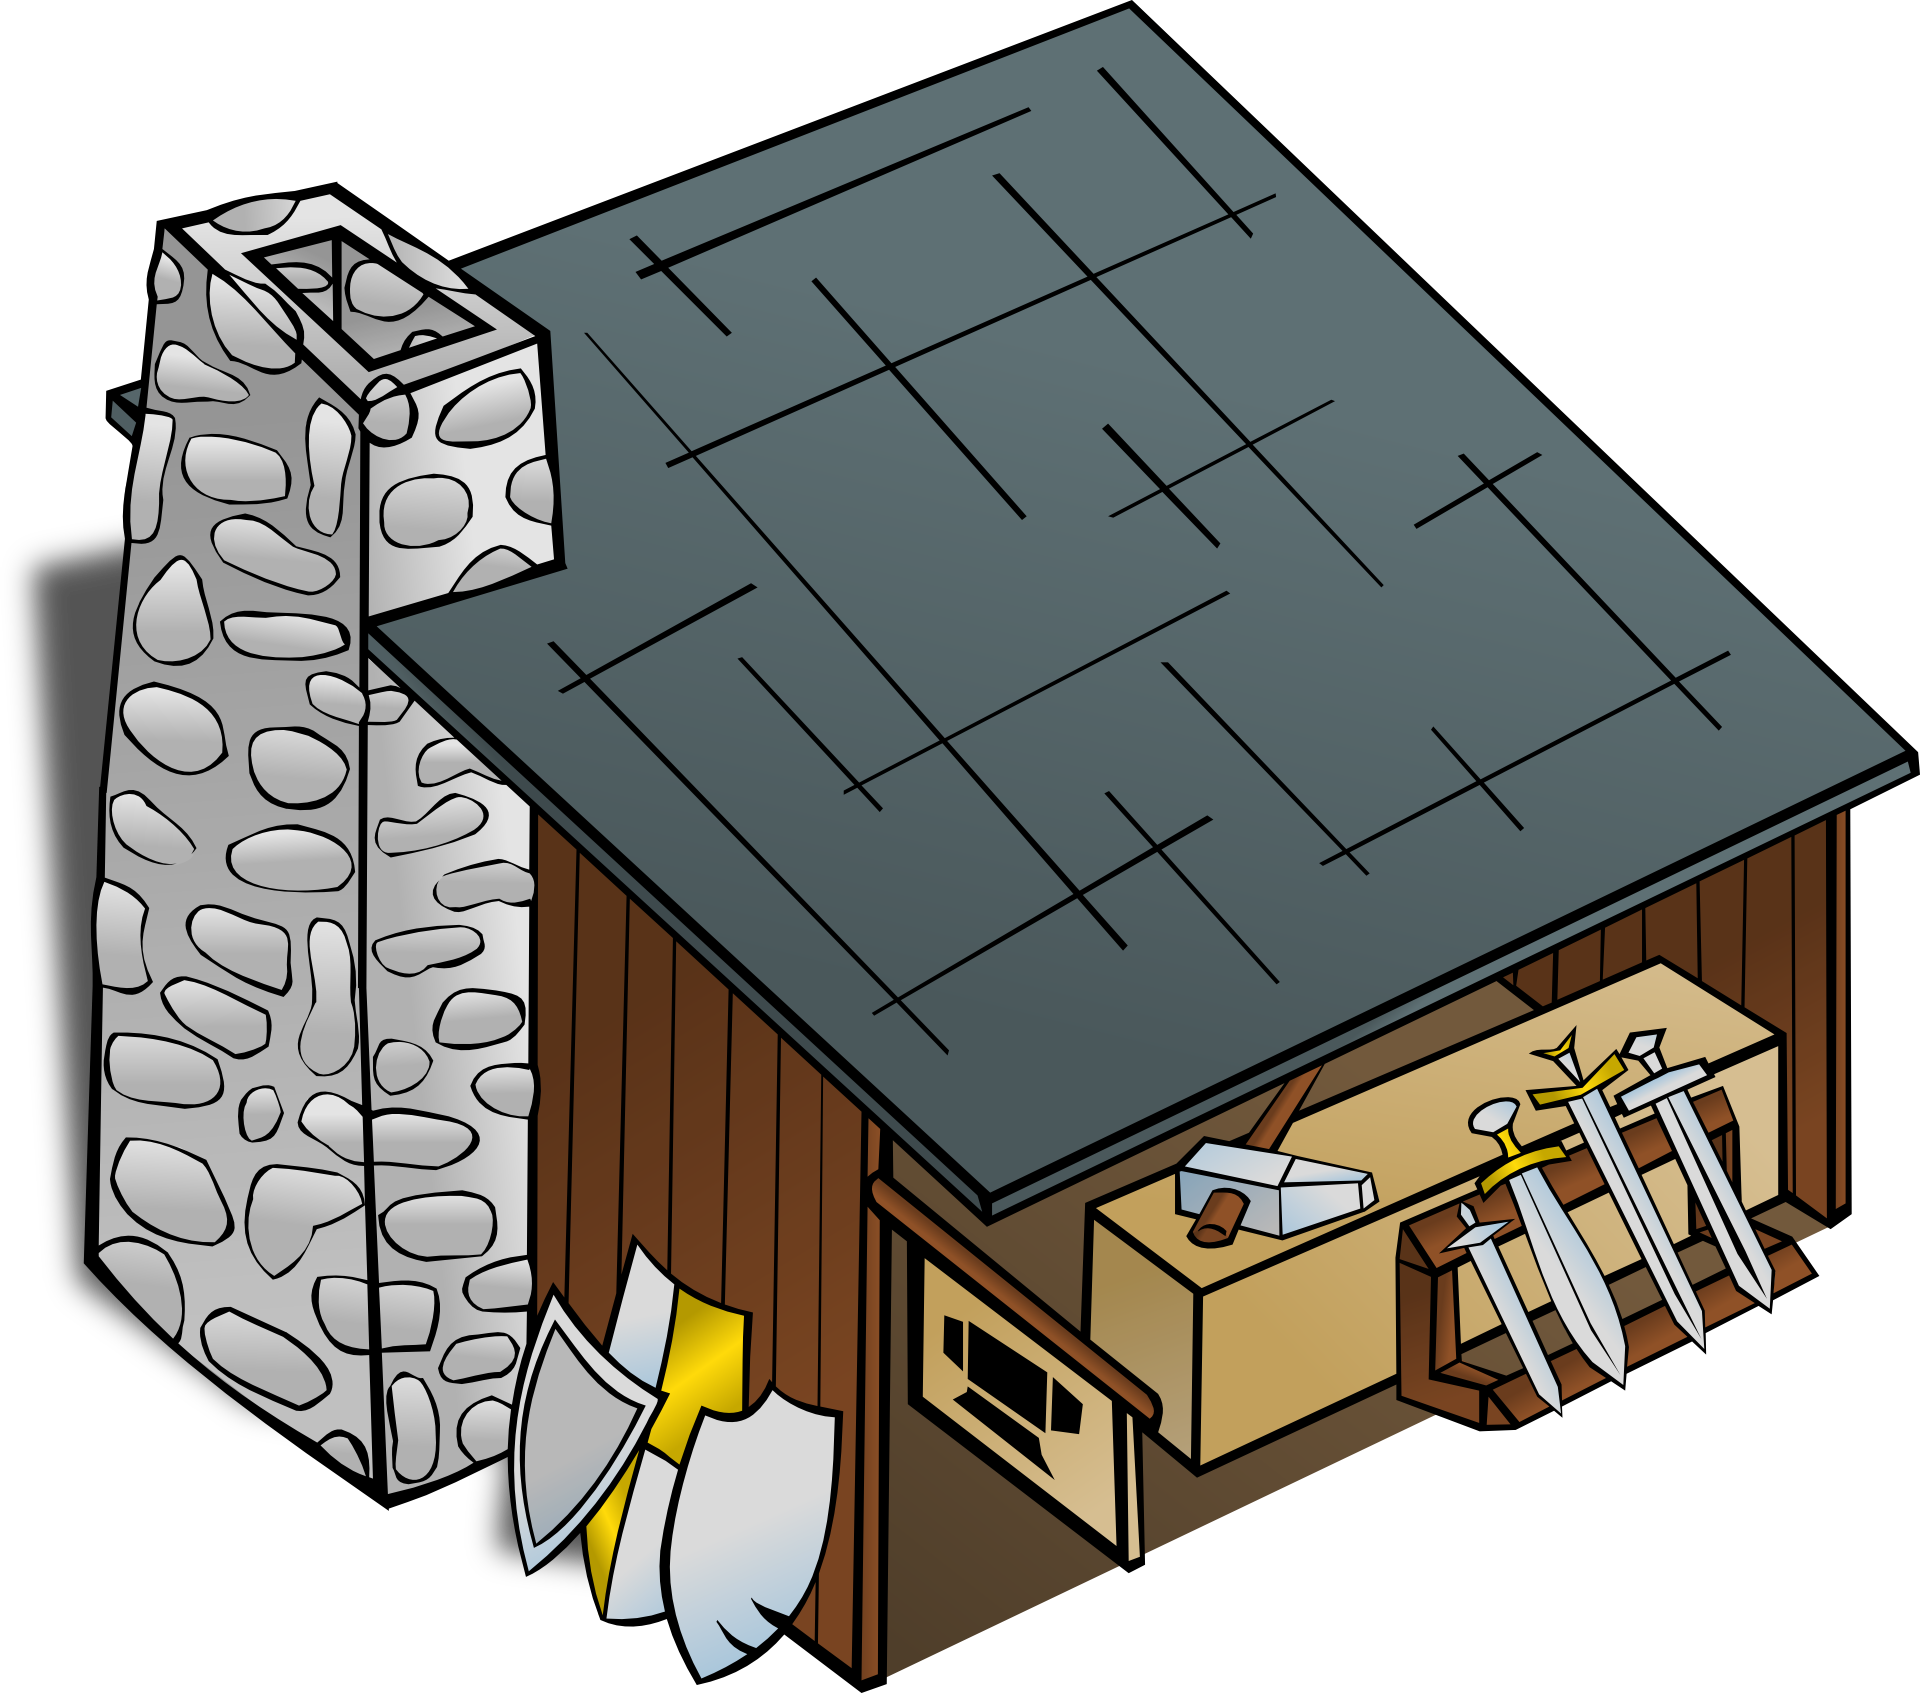 House with chimney clipart clip freeuse download The Blacksmith's Shop Clip art - chimney 1920*1693 transprent Png ... clip freeuse download